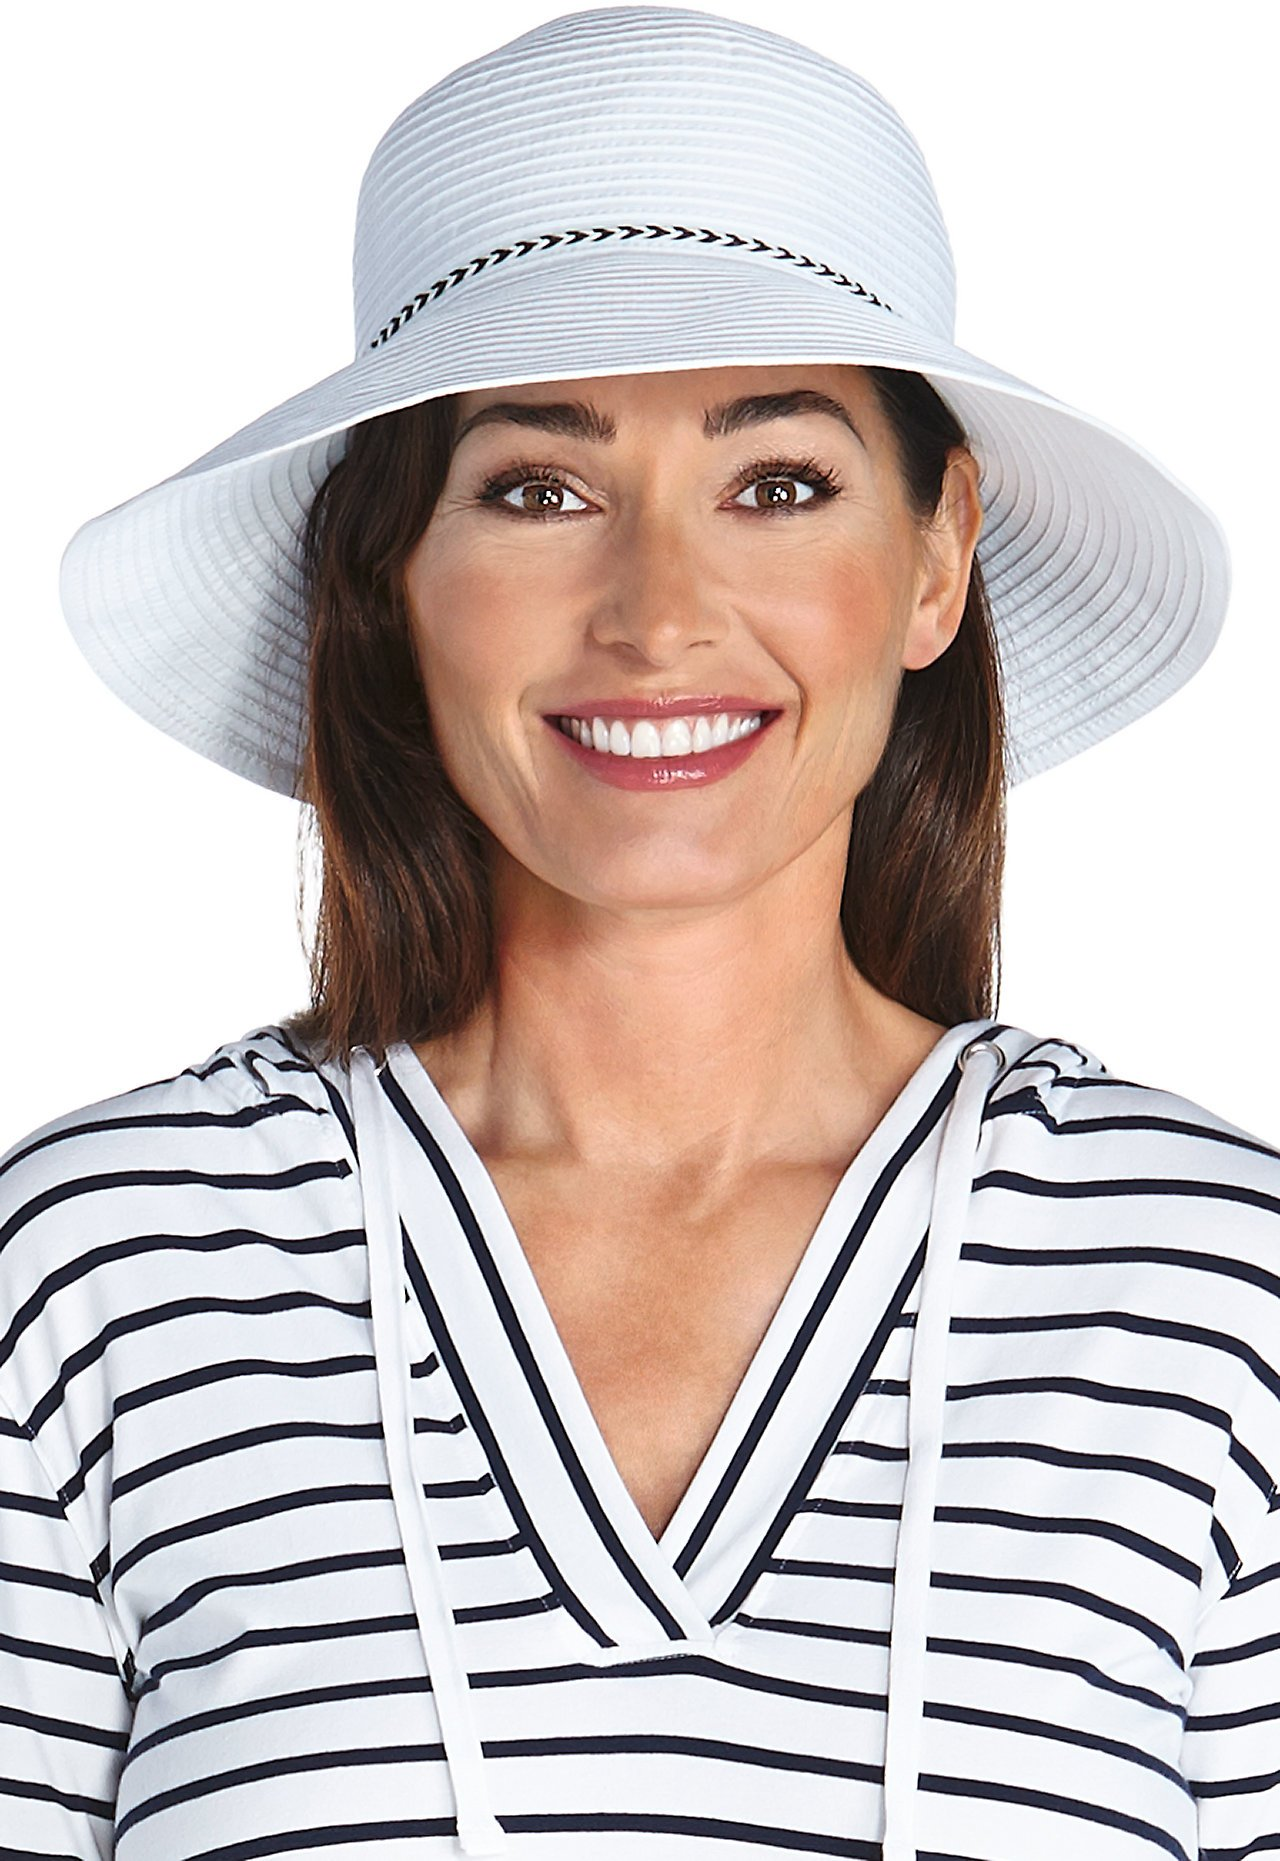 Coolibar UPF 50+ Women's Audrey Ribbon Bucket Hat - Sun Protective (One Size- White)